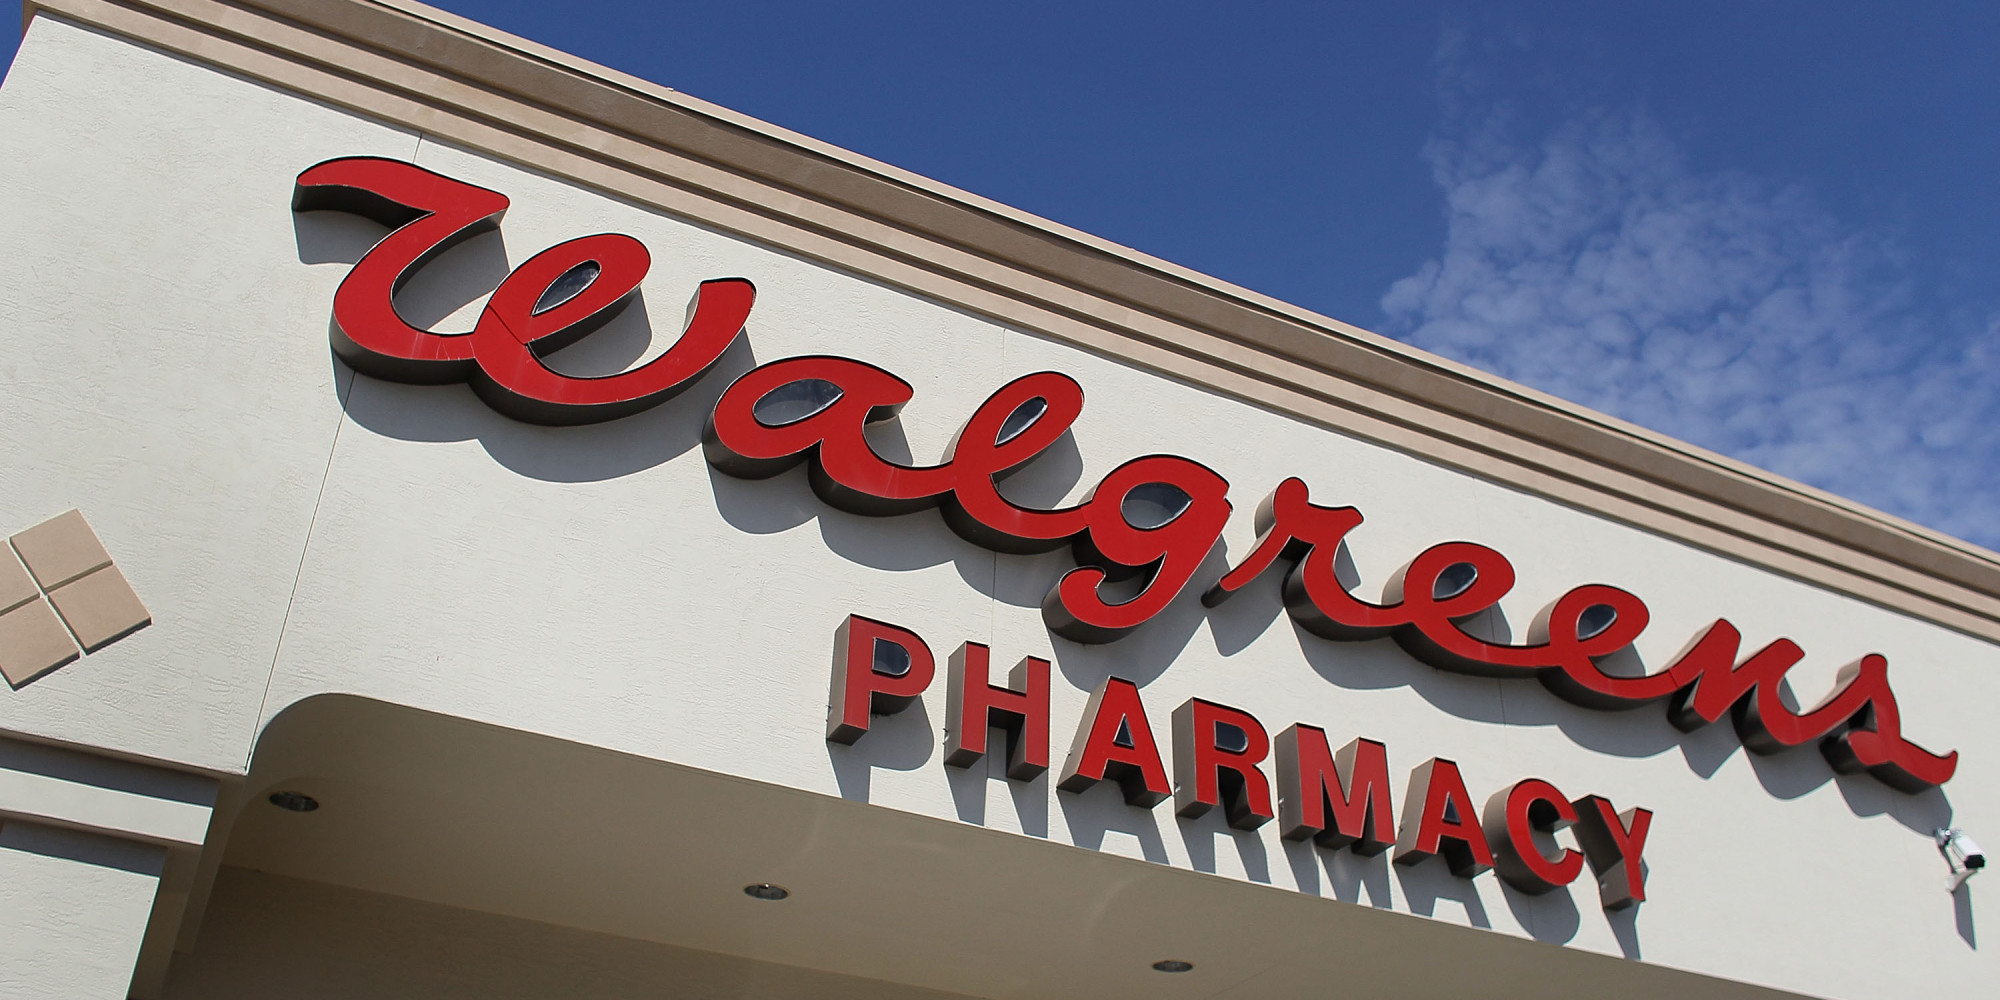 Walgreens Becomes First Retail Chain to Diagnose, Treat Chronic Conditions